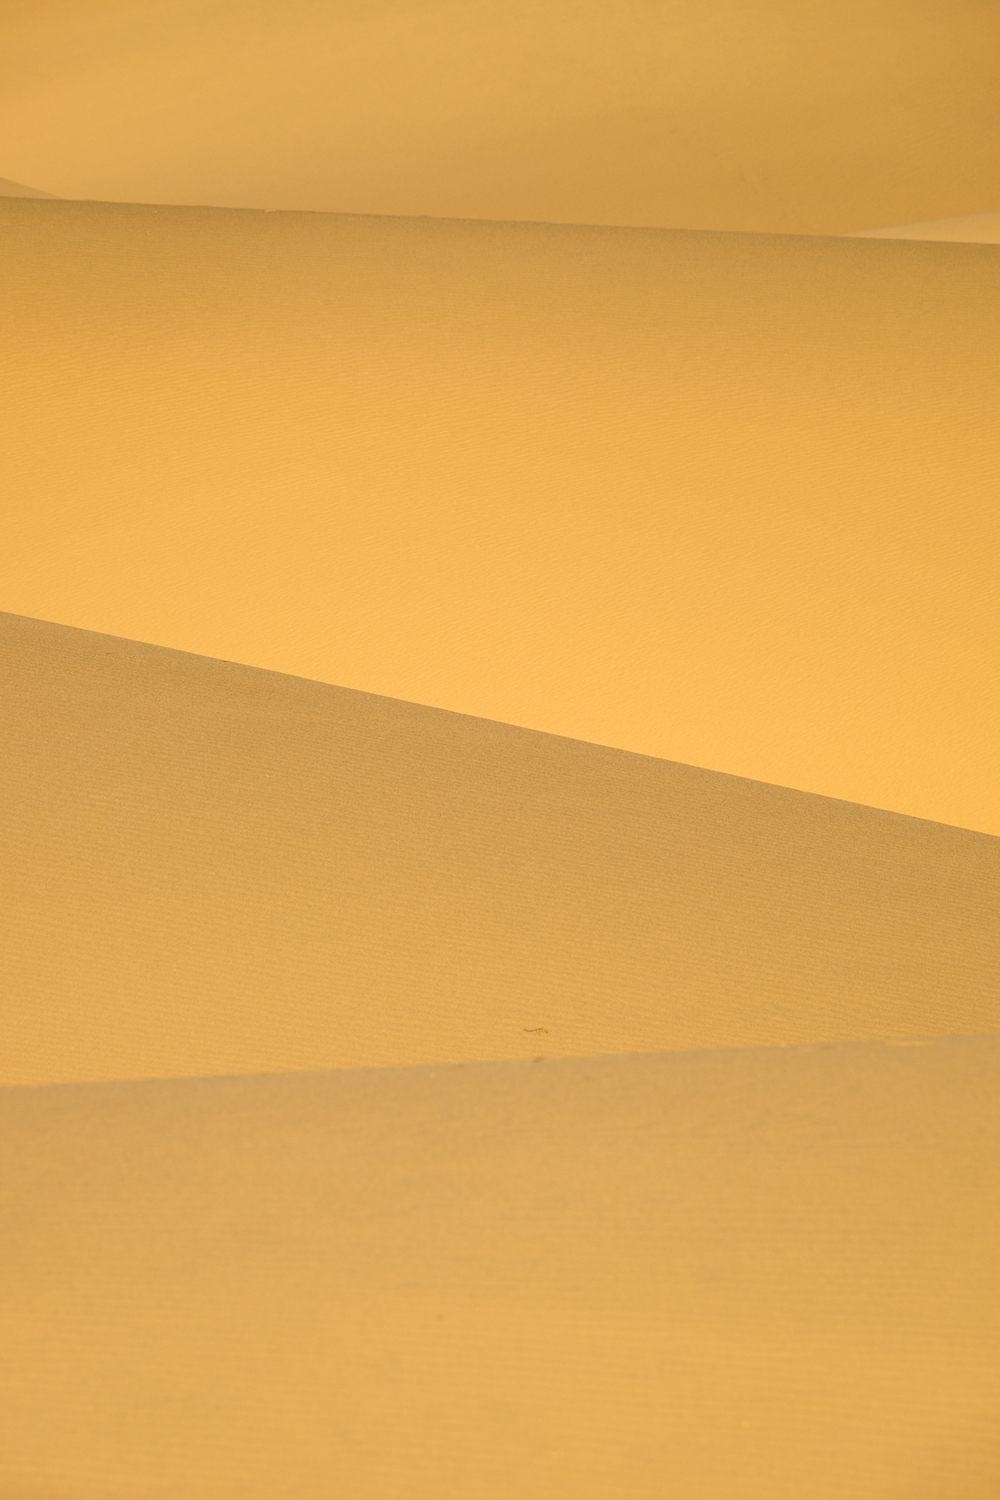 A long lens can offer the opportunity for some really interesting abstracts. Yes, this is a real photograph of sand dunes. Shadow and light.